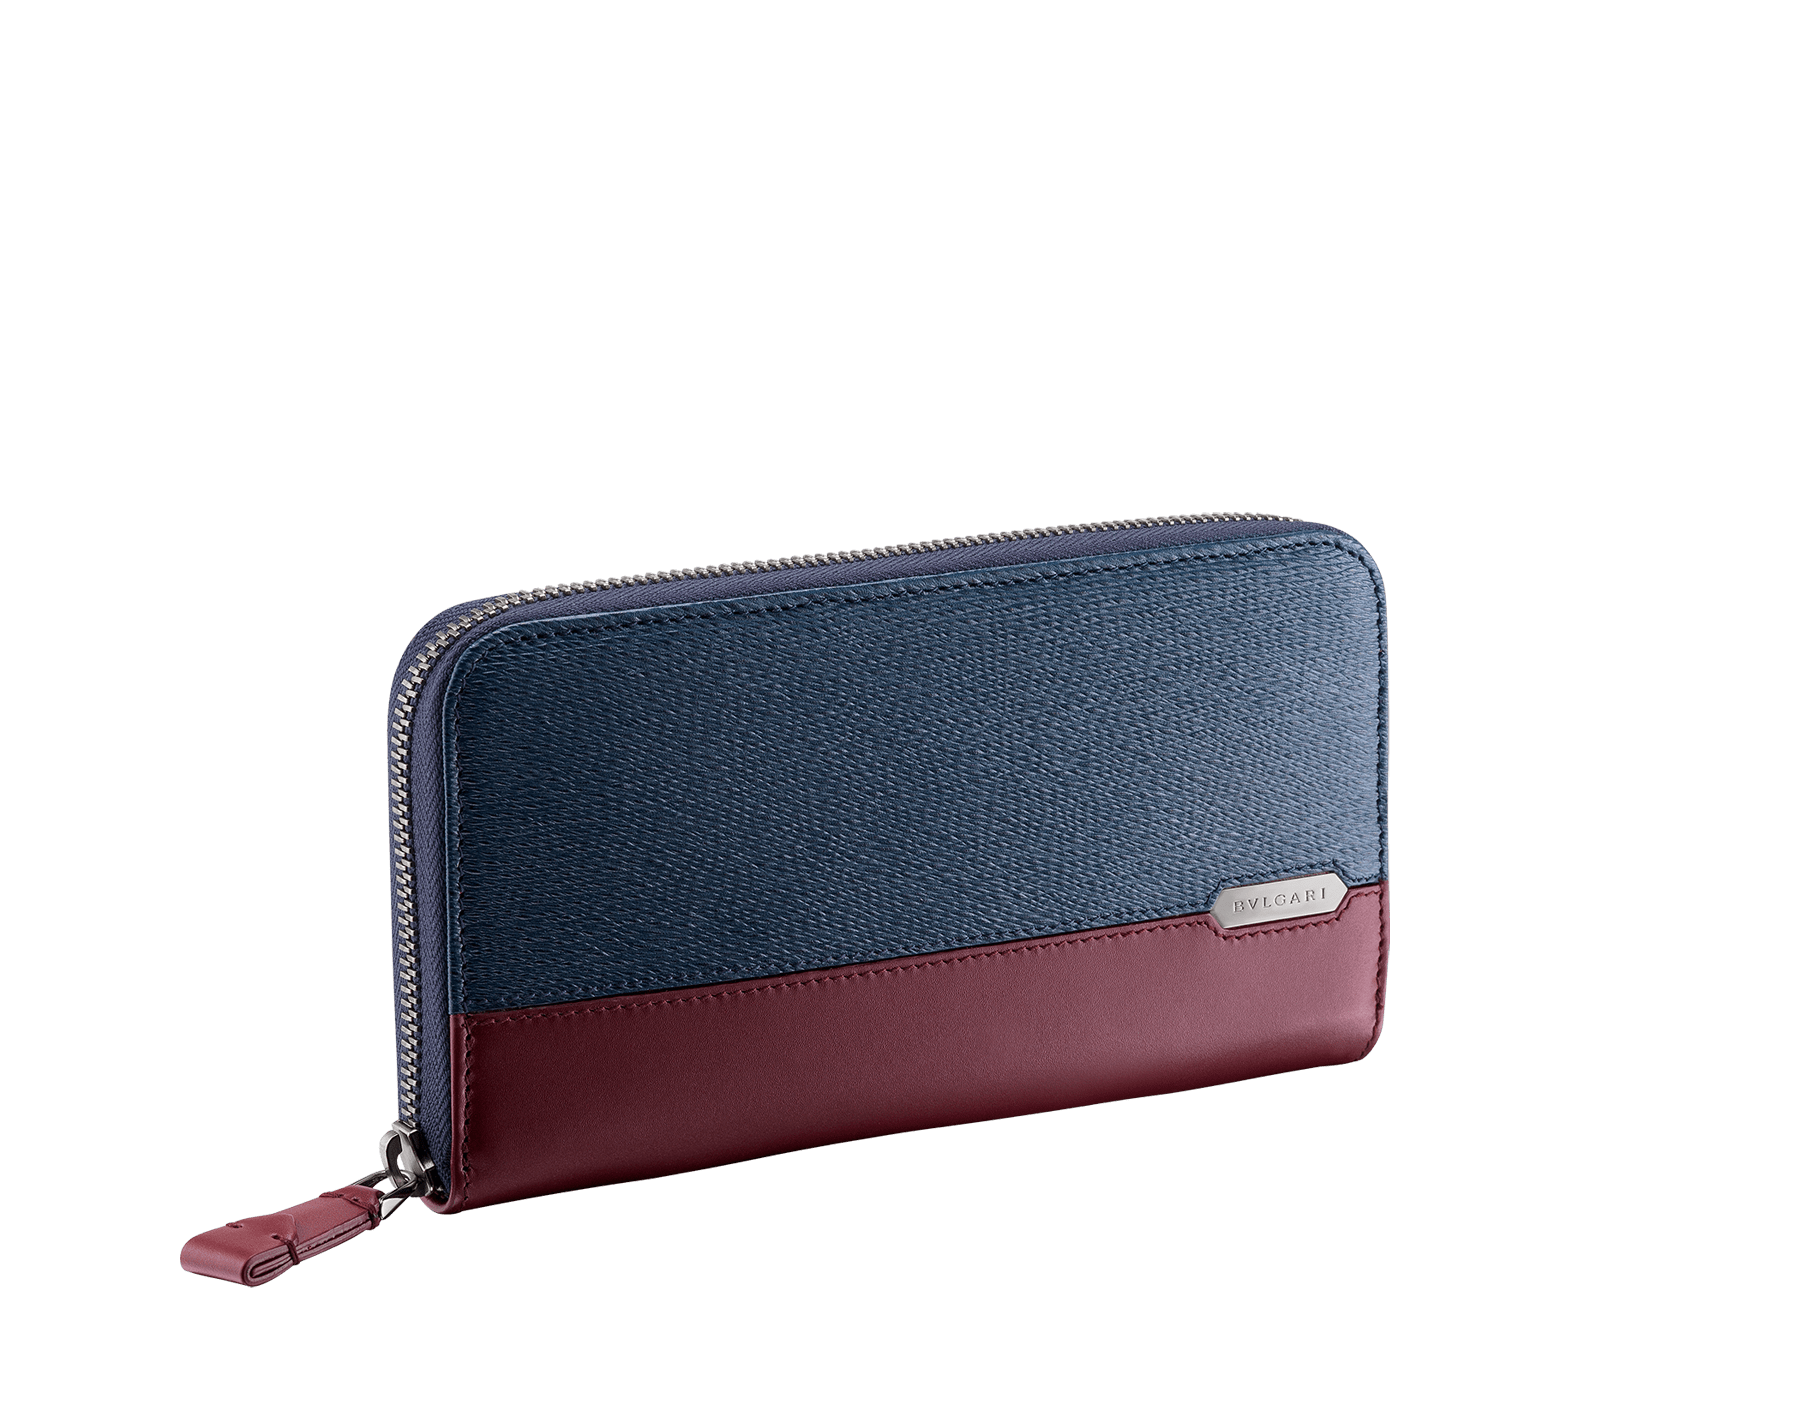 Serpenti Scaglie men's zipped wallet in denim sapphire grazed calf leather and roman garnet calf leather. Bvlgari logo engraved on the hexagonal scaglie metal plate finished in dark ruthenium. 288343 image 1